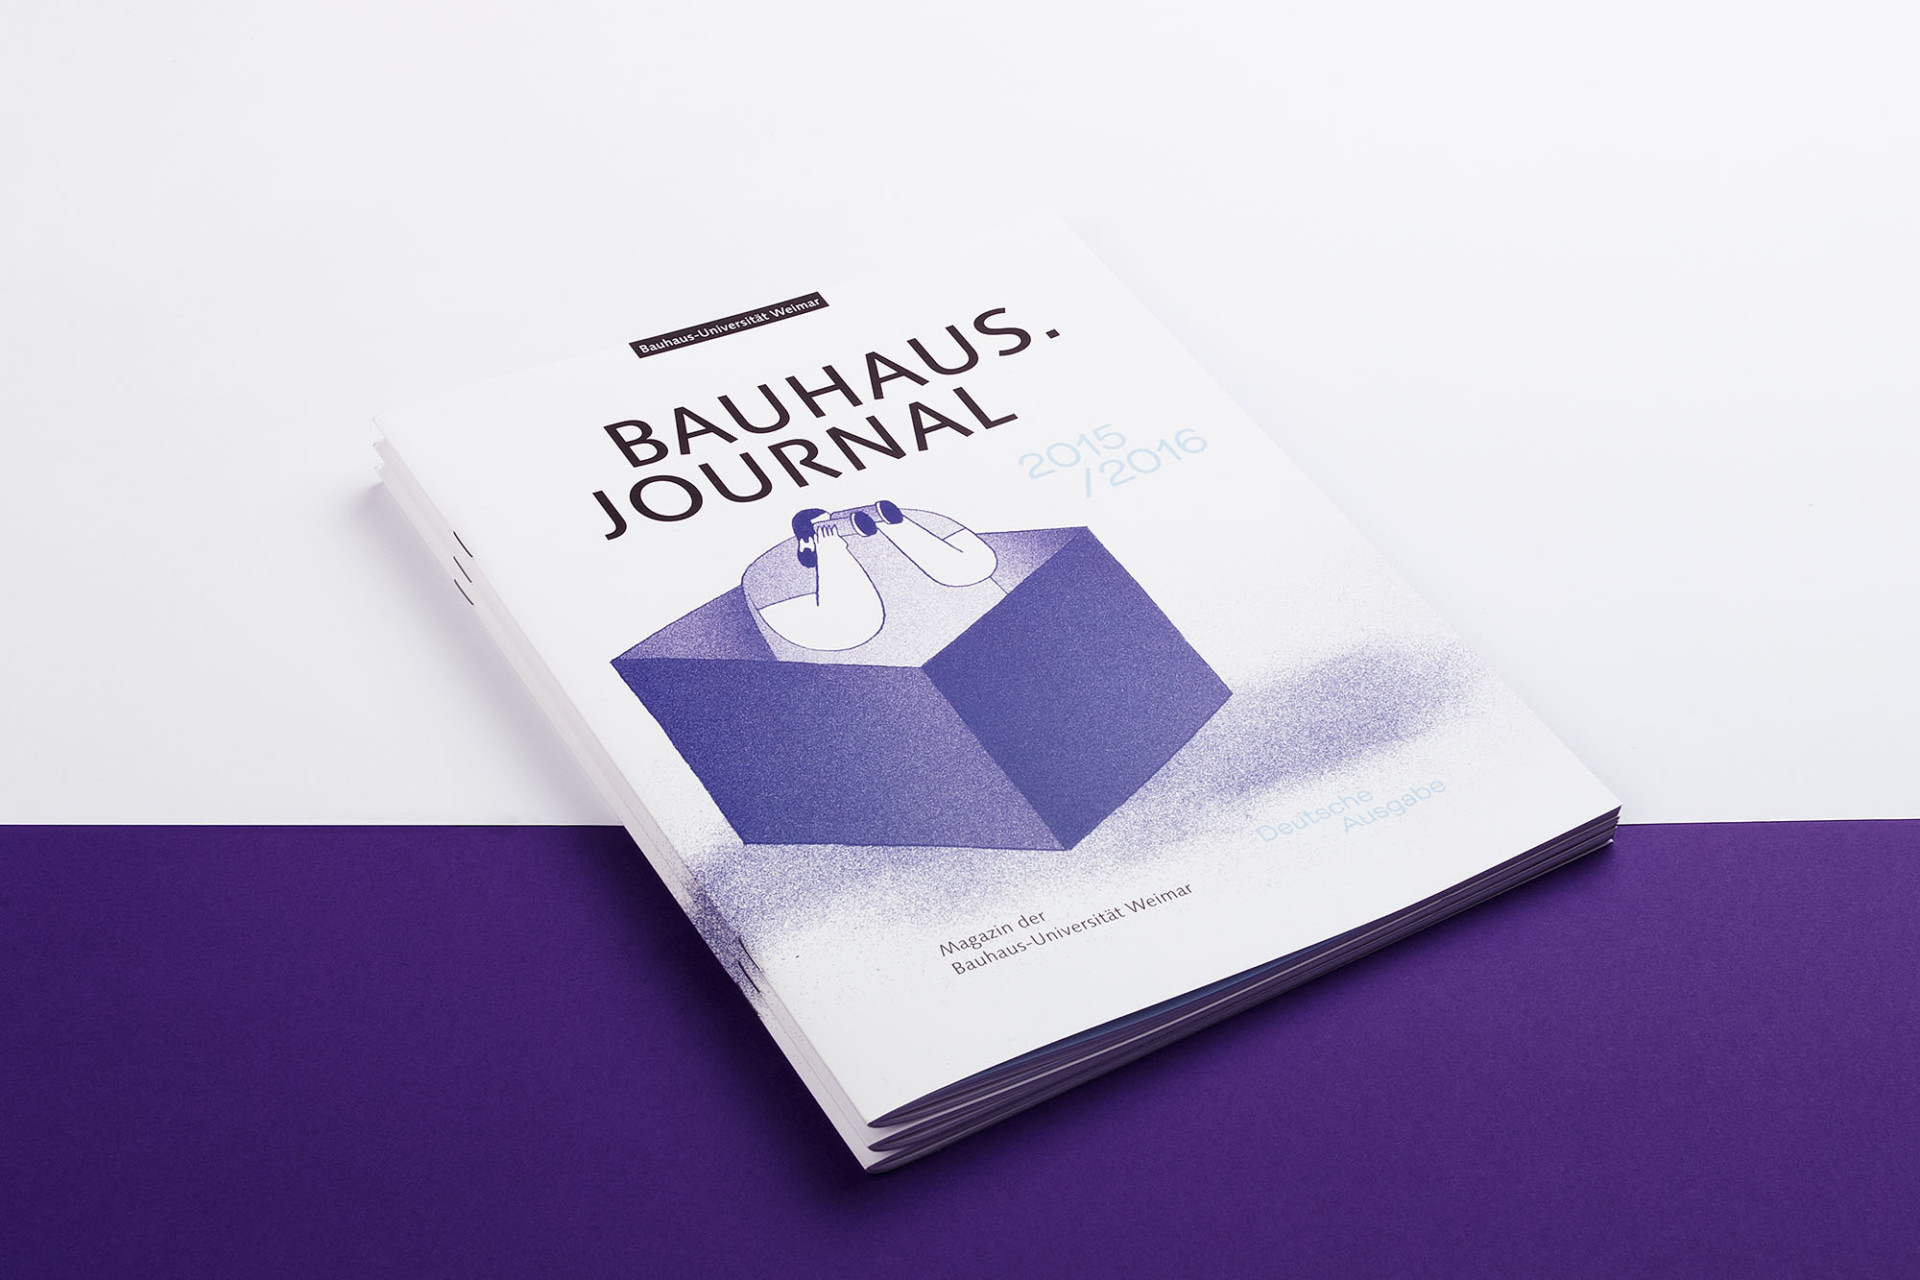 Marcus Glahn Bauhaus.Journal 2015/2016 – Commissioned